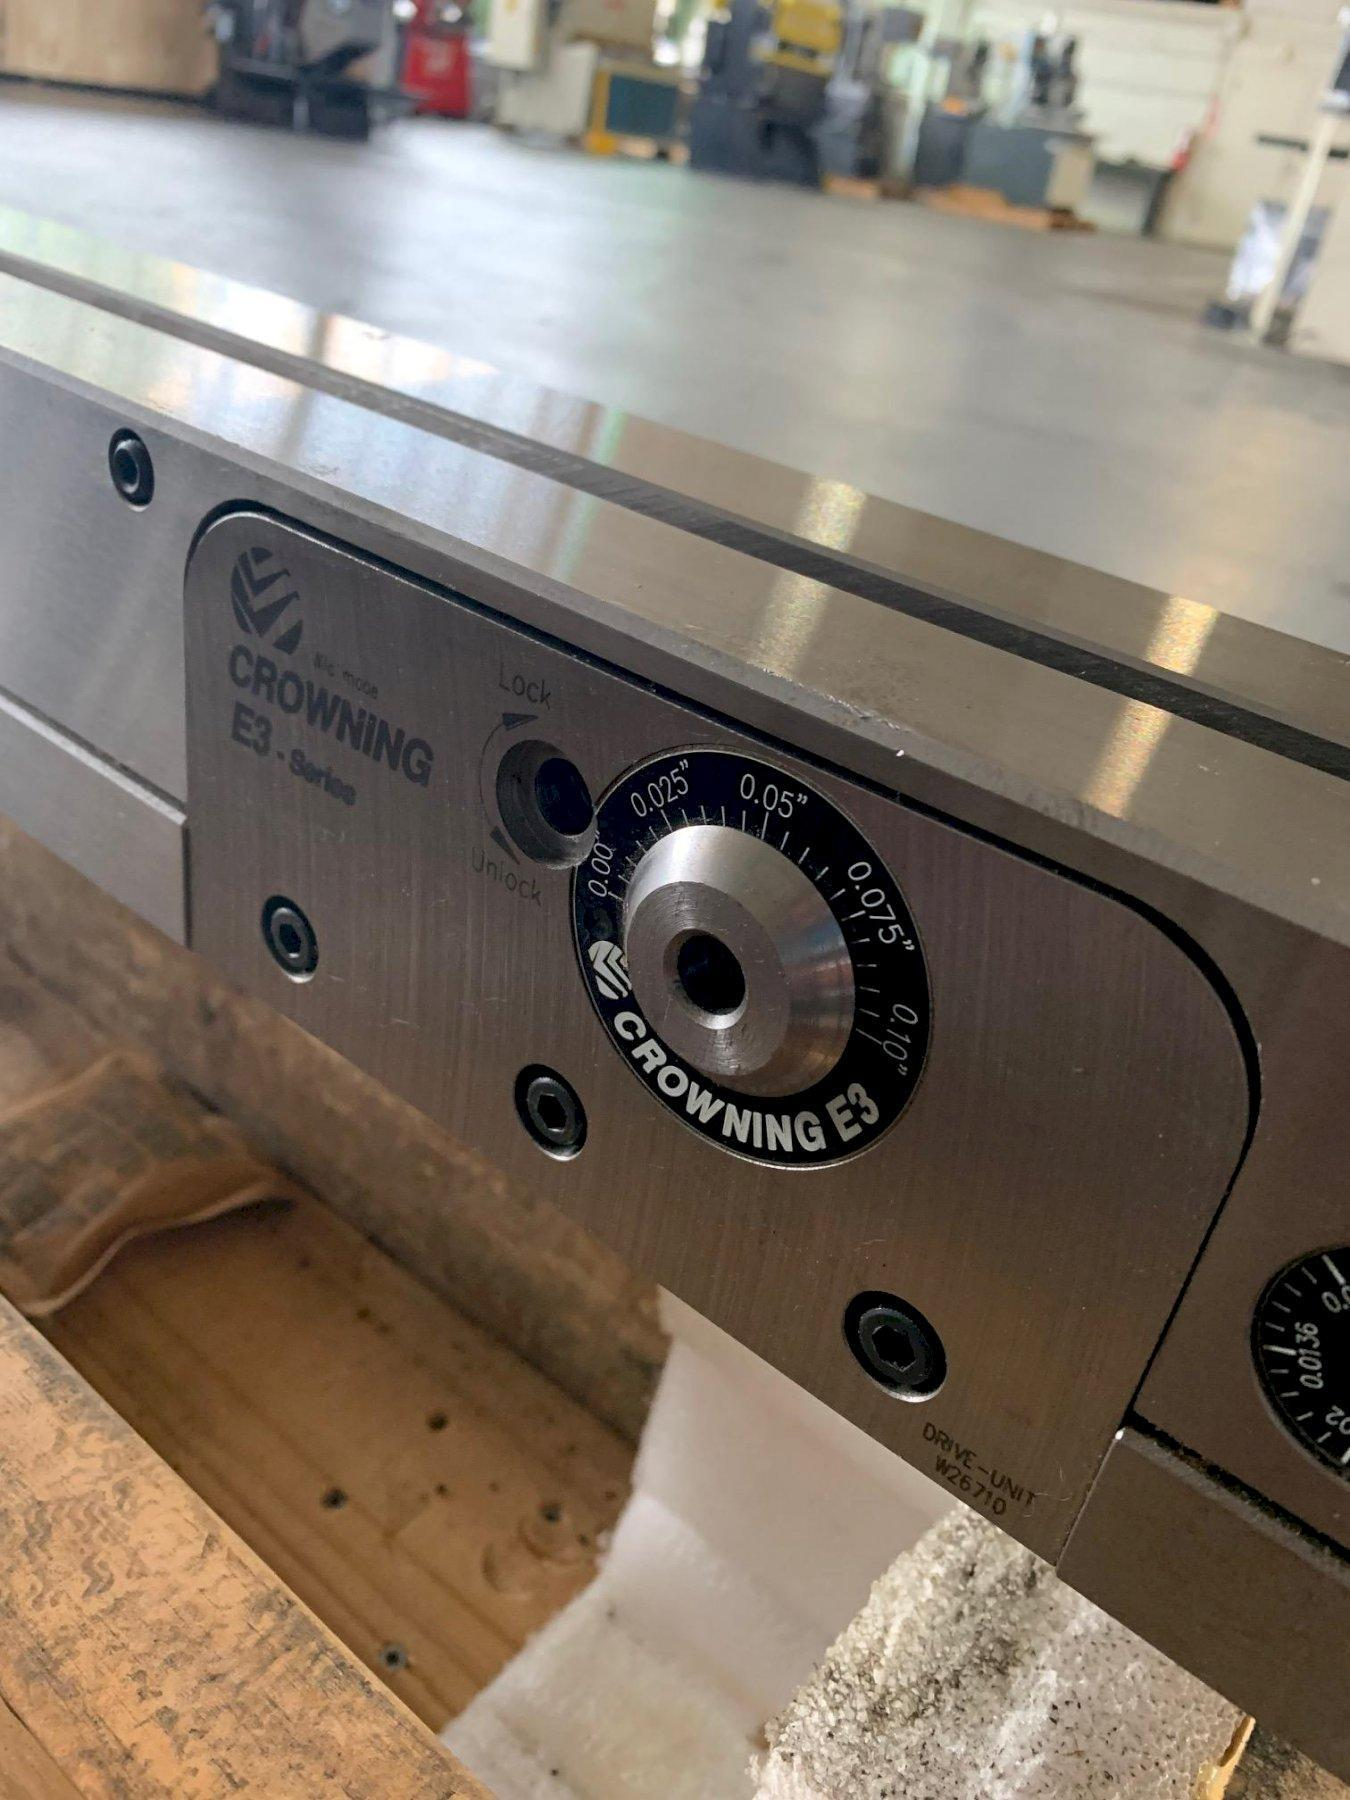 NEW WILA 10' MANUAL CROWNING DIE HOLDER, Model , 10' Manual Crowning Die Holder, Stock No. 8138